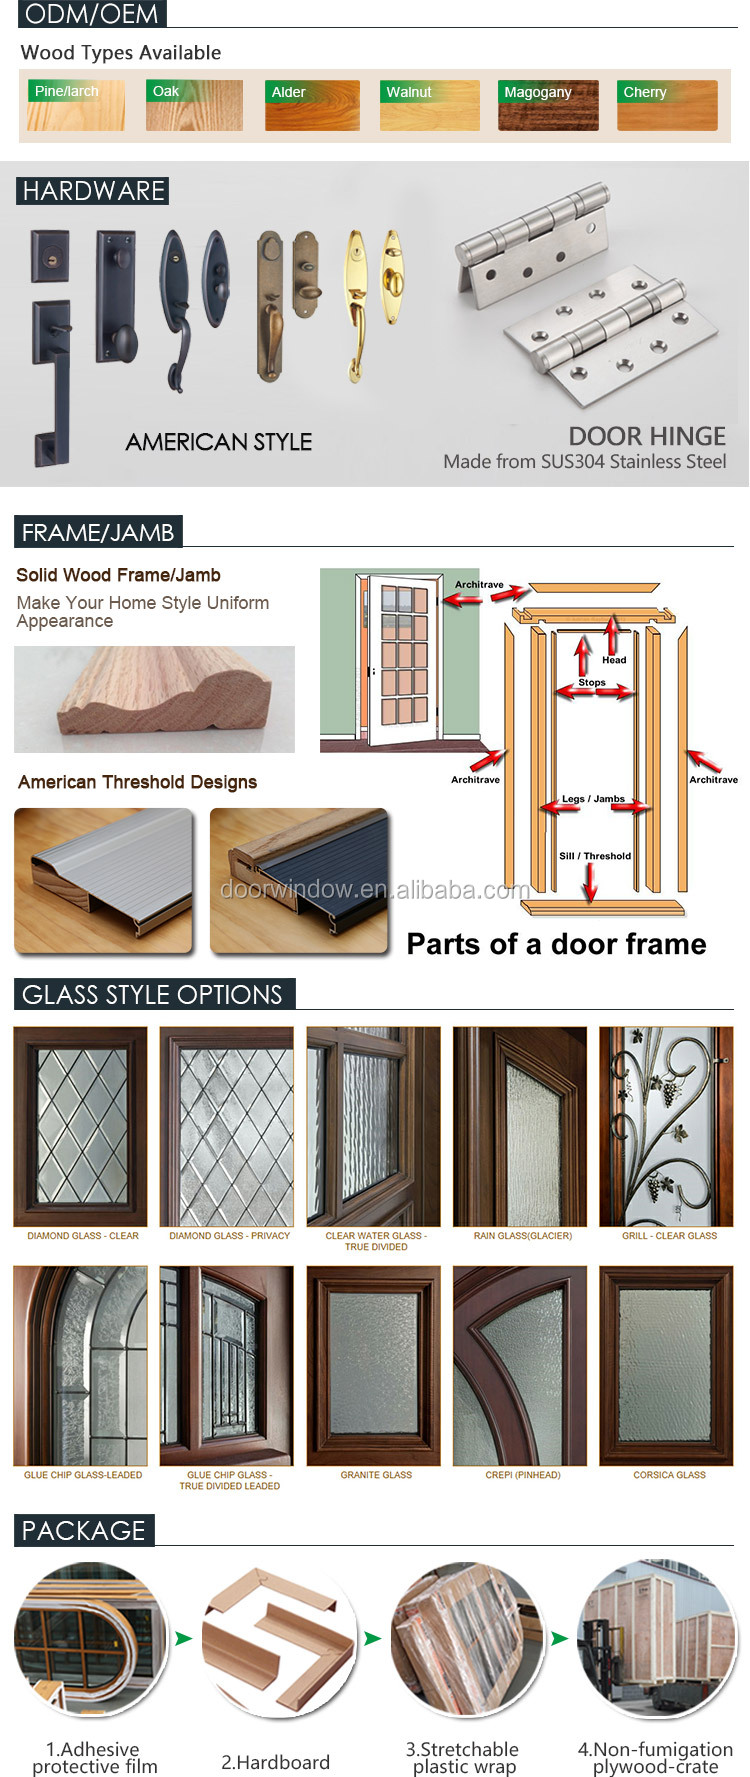 North America popular front french doors round top design with decorative wrought iron clavos